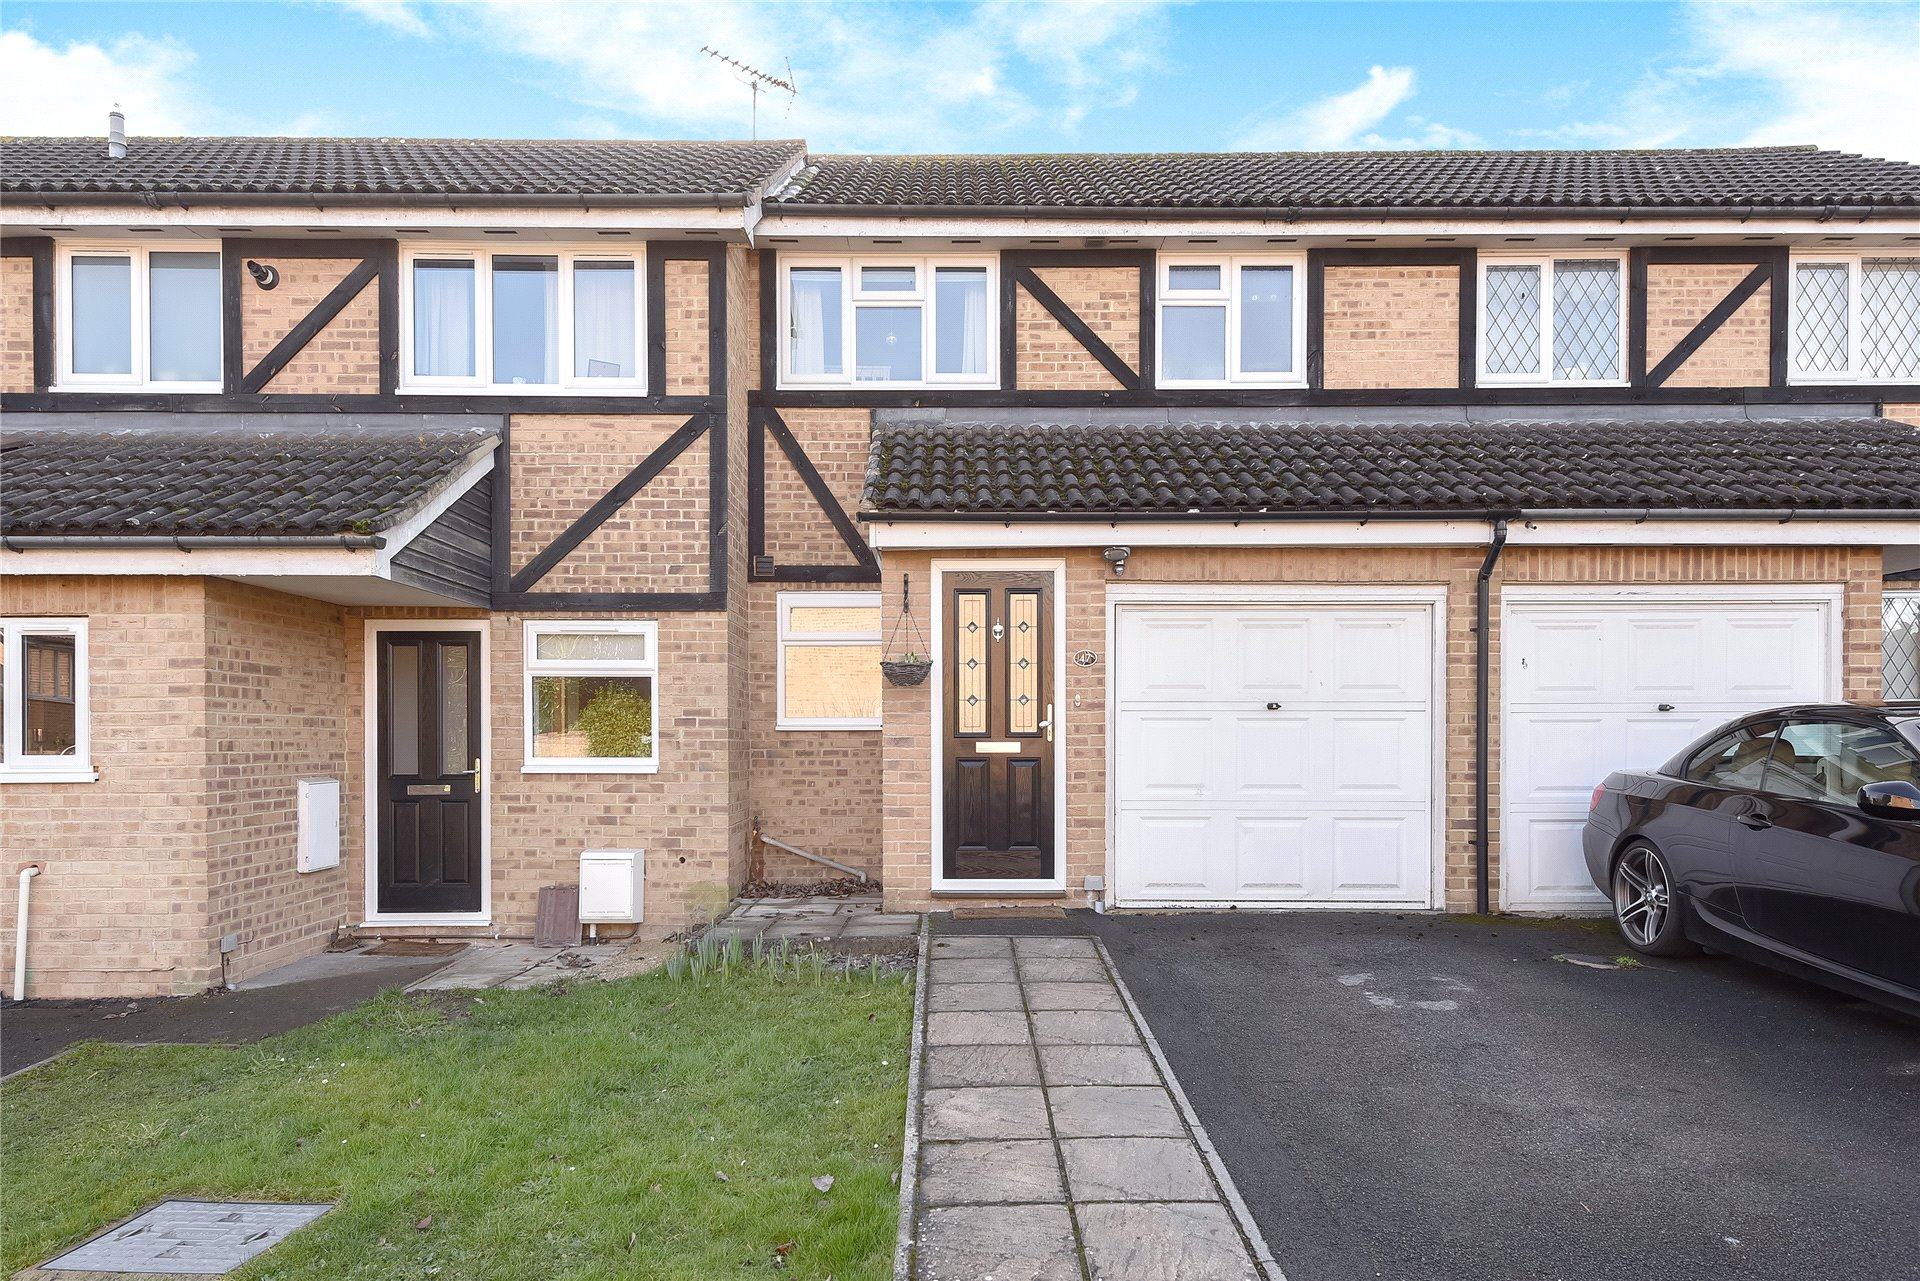 2 Bedrooms Terraced House for sale in Challis Place, Bracknell, Berkshire, RG42